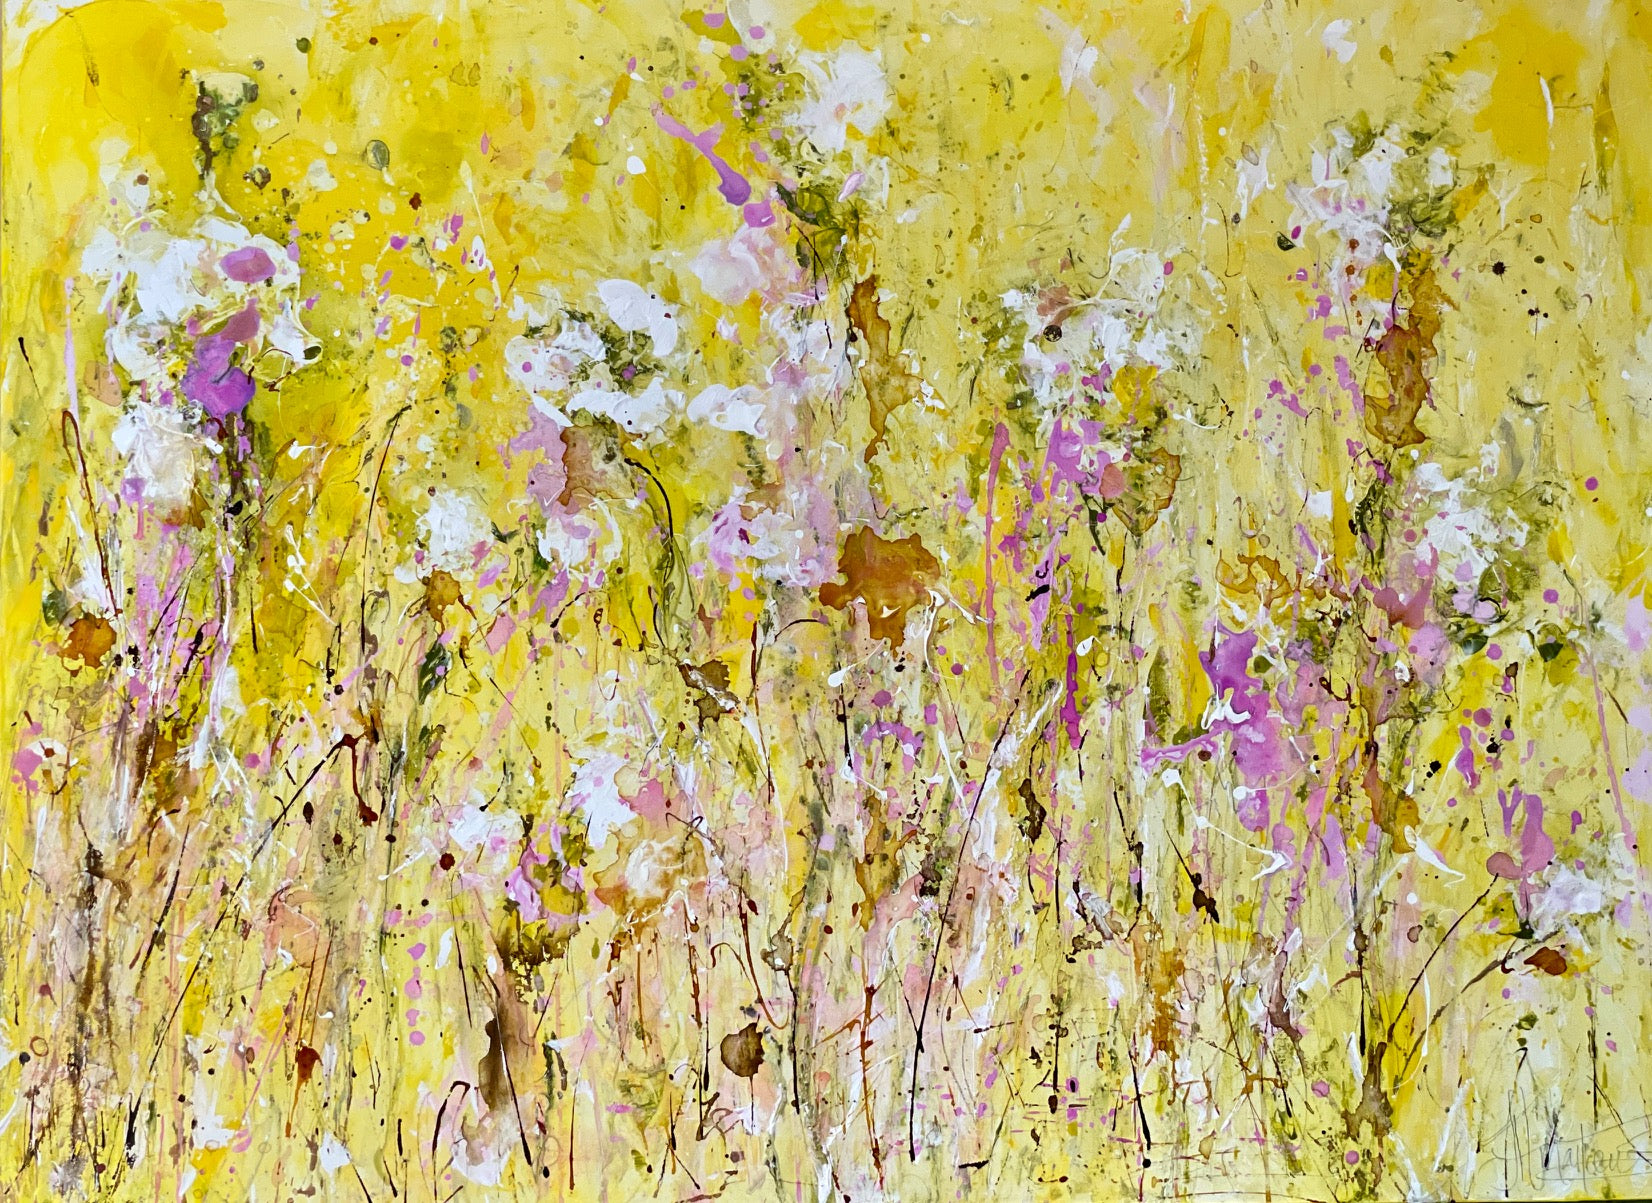 'Spring Fling' 36x48 Abstract Floral Painting